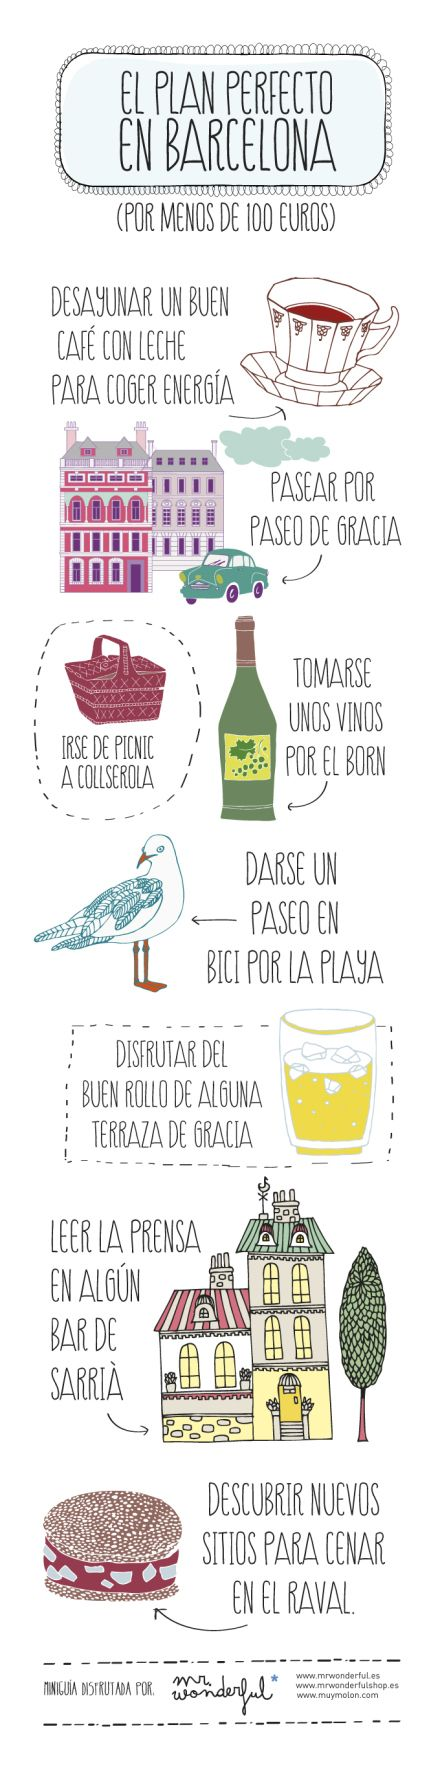 El plan perfecto en Barcelona. The perfect plan in Barcelona. By Mr. Wonderful.